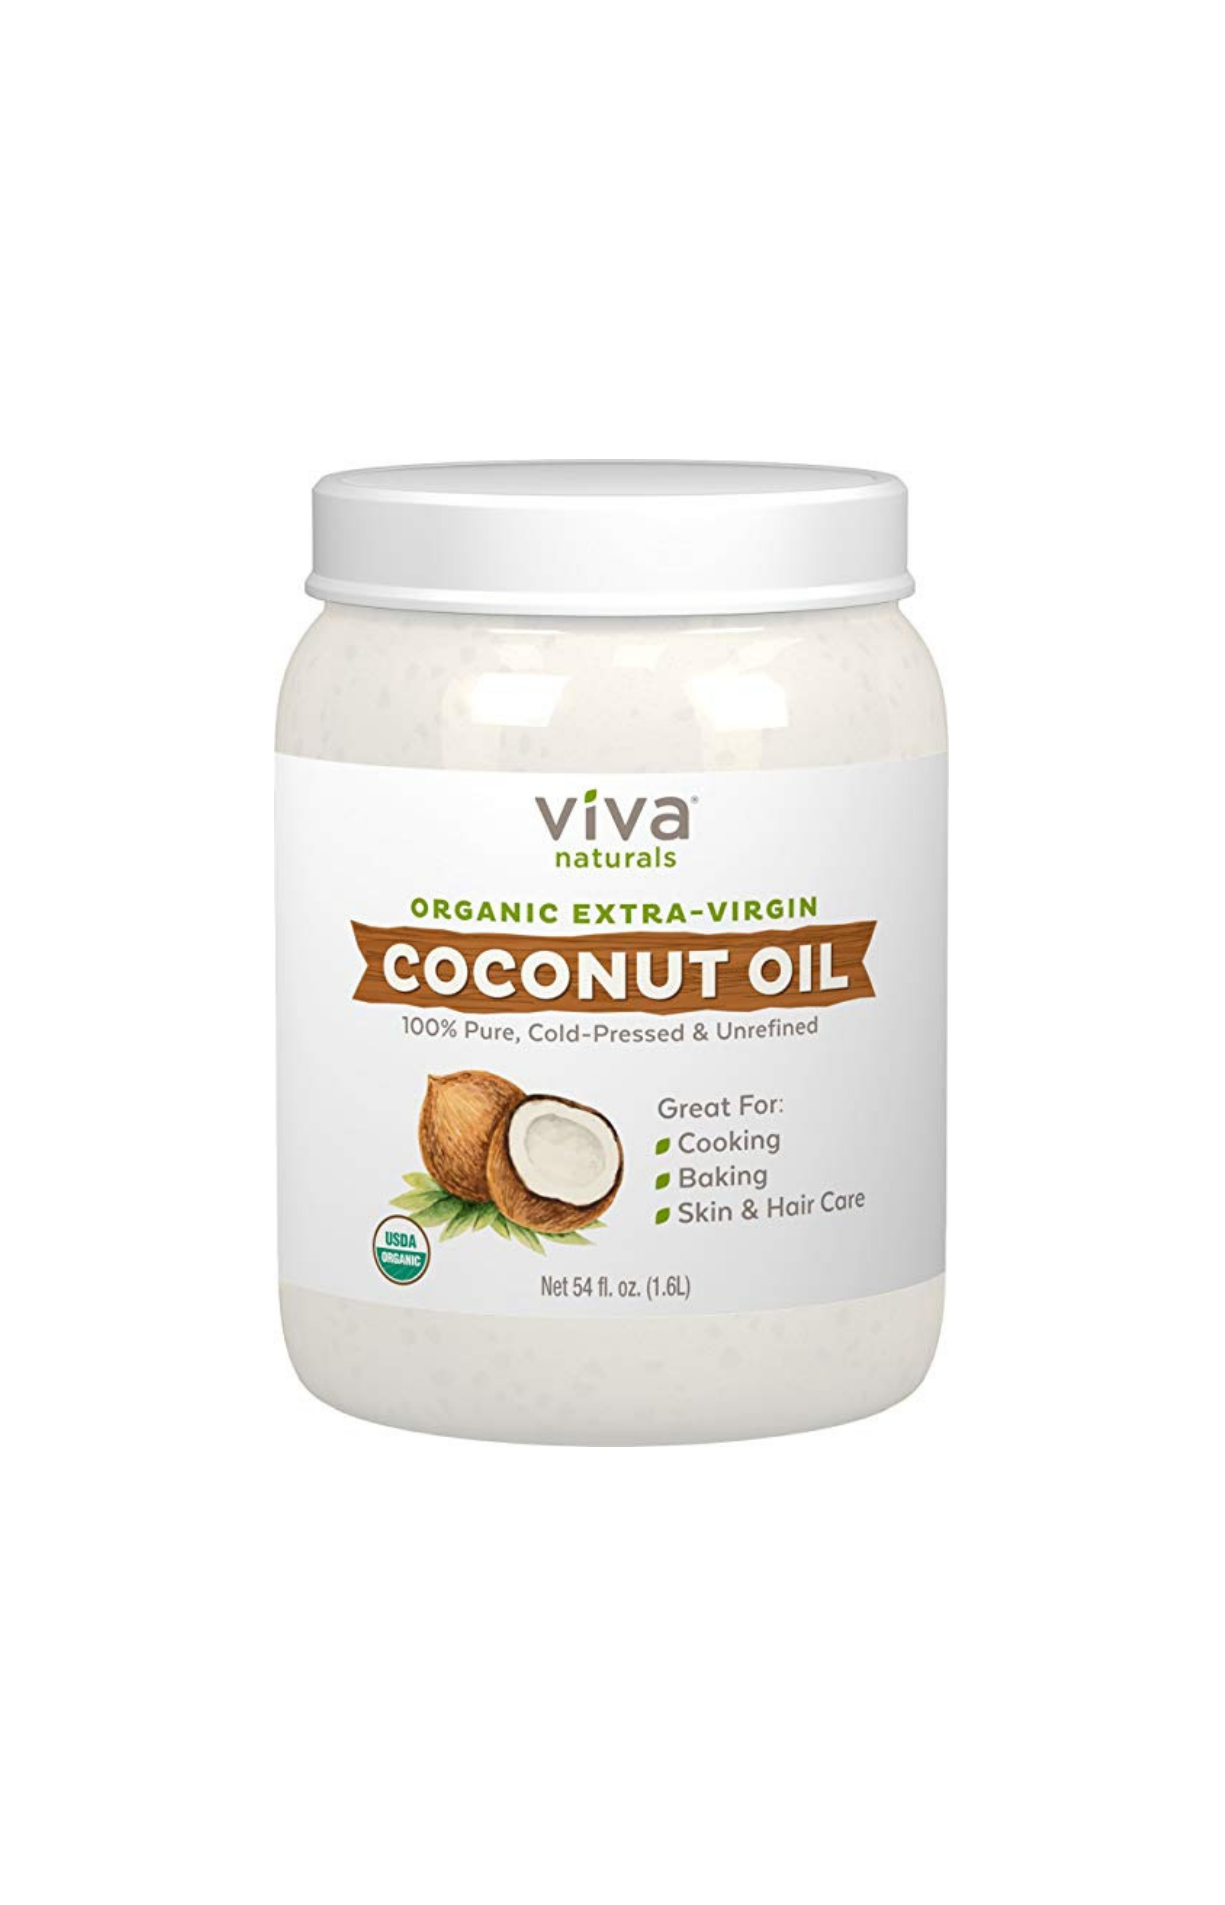 The best coconut oil